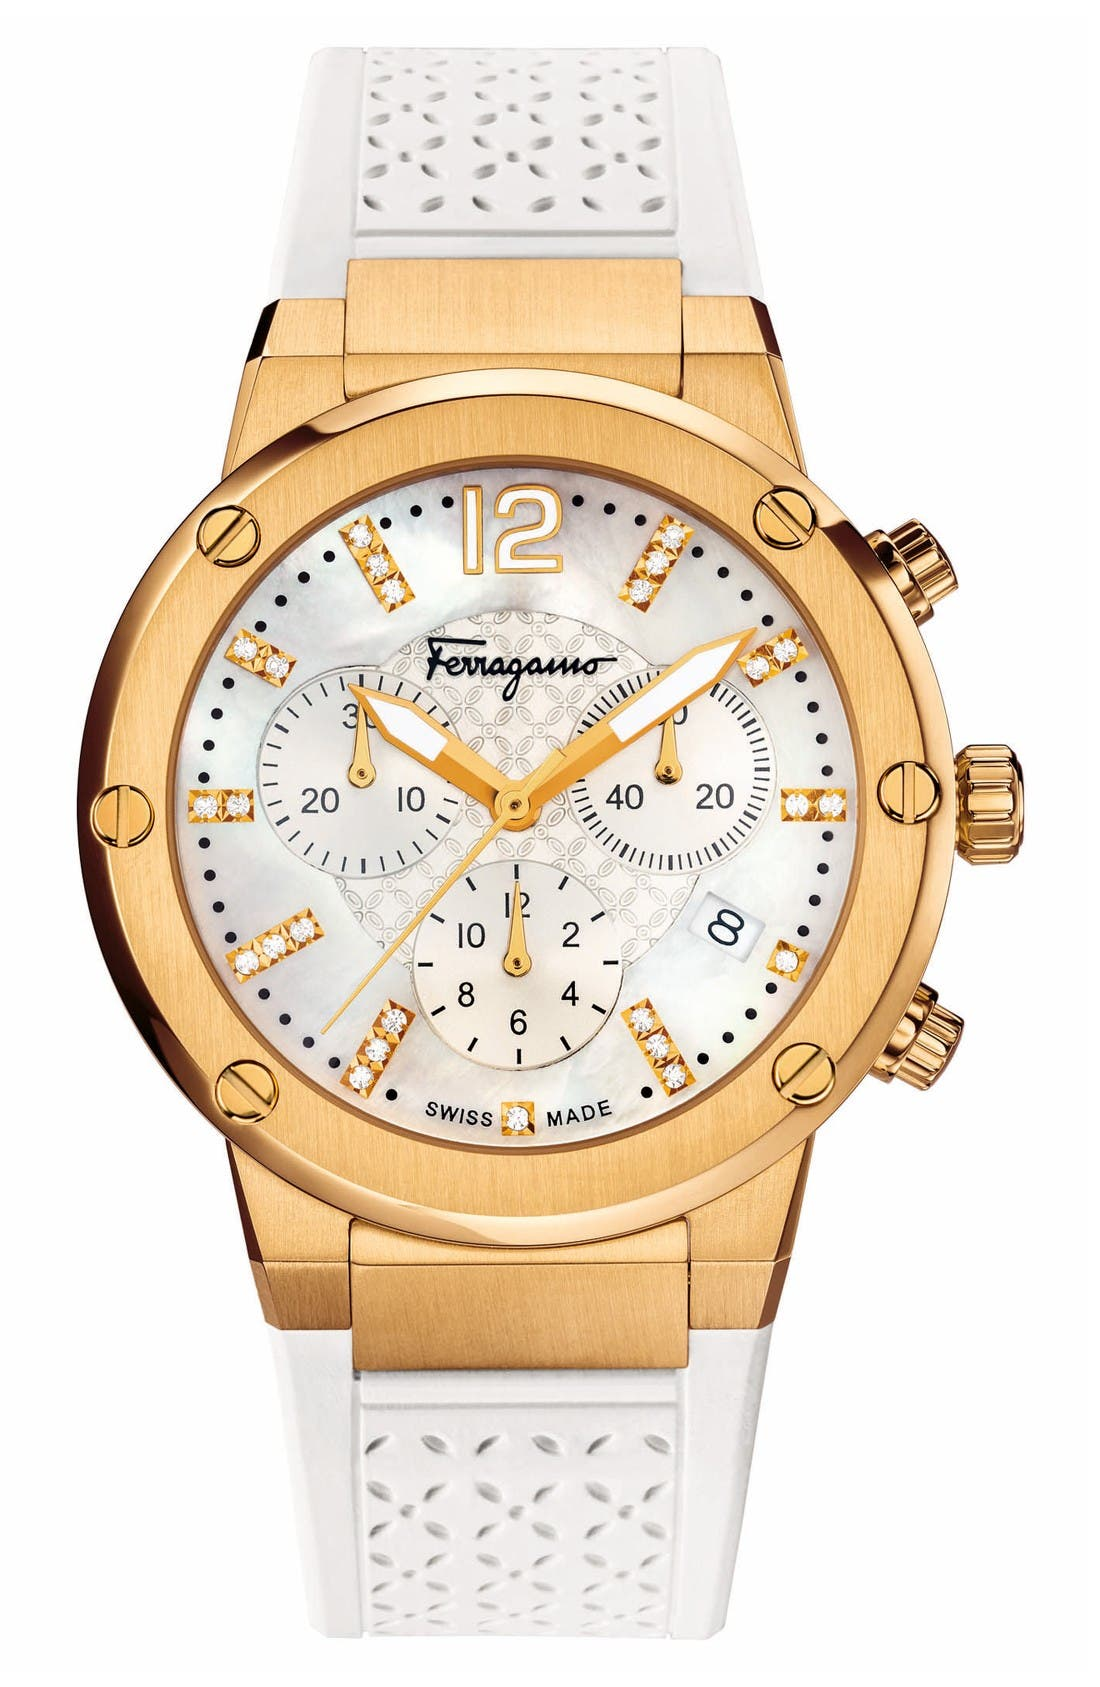 Salvatore Ferragamo F80 Chronograph Rubber Strap Watch, 39mm